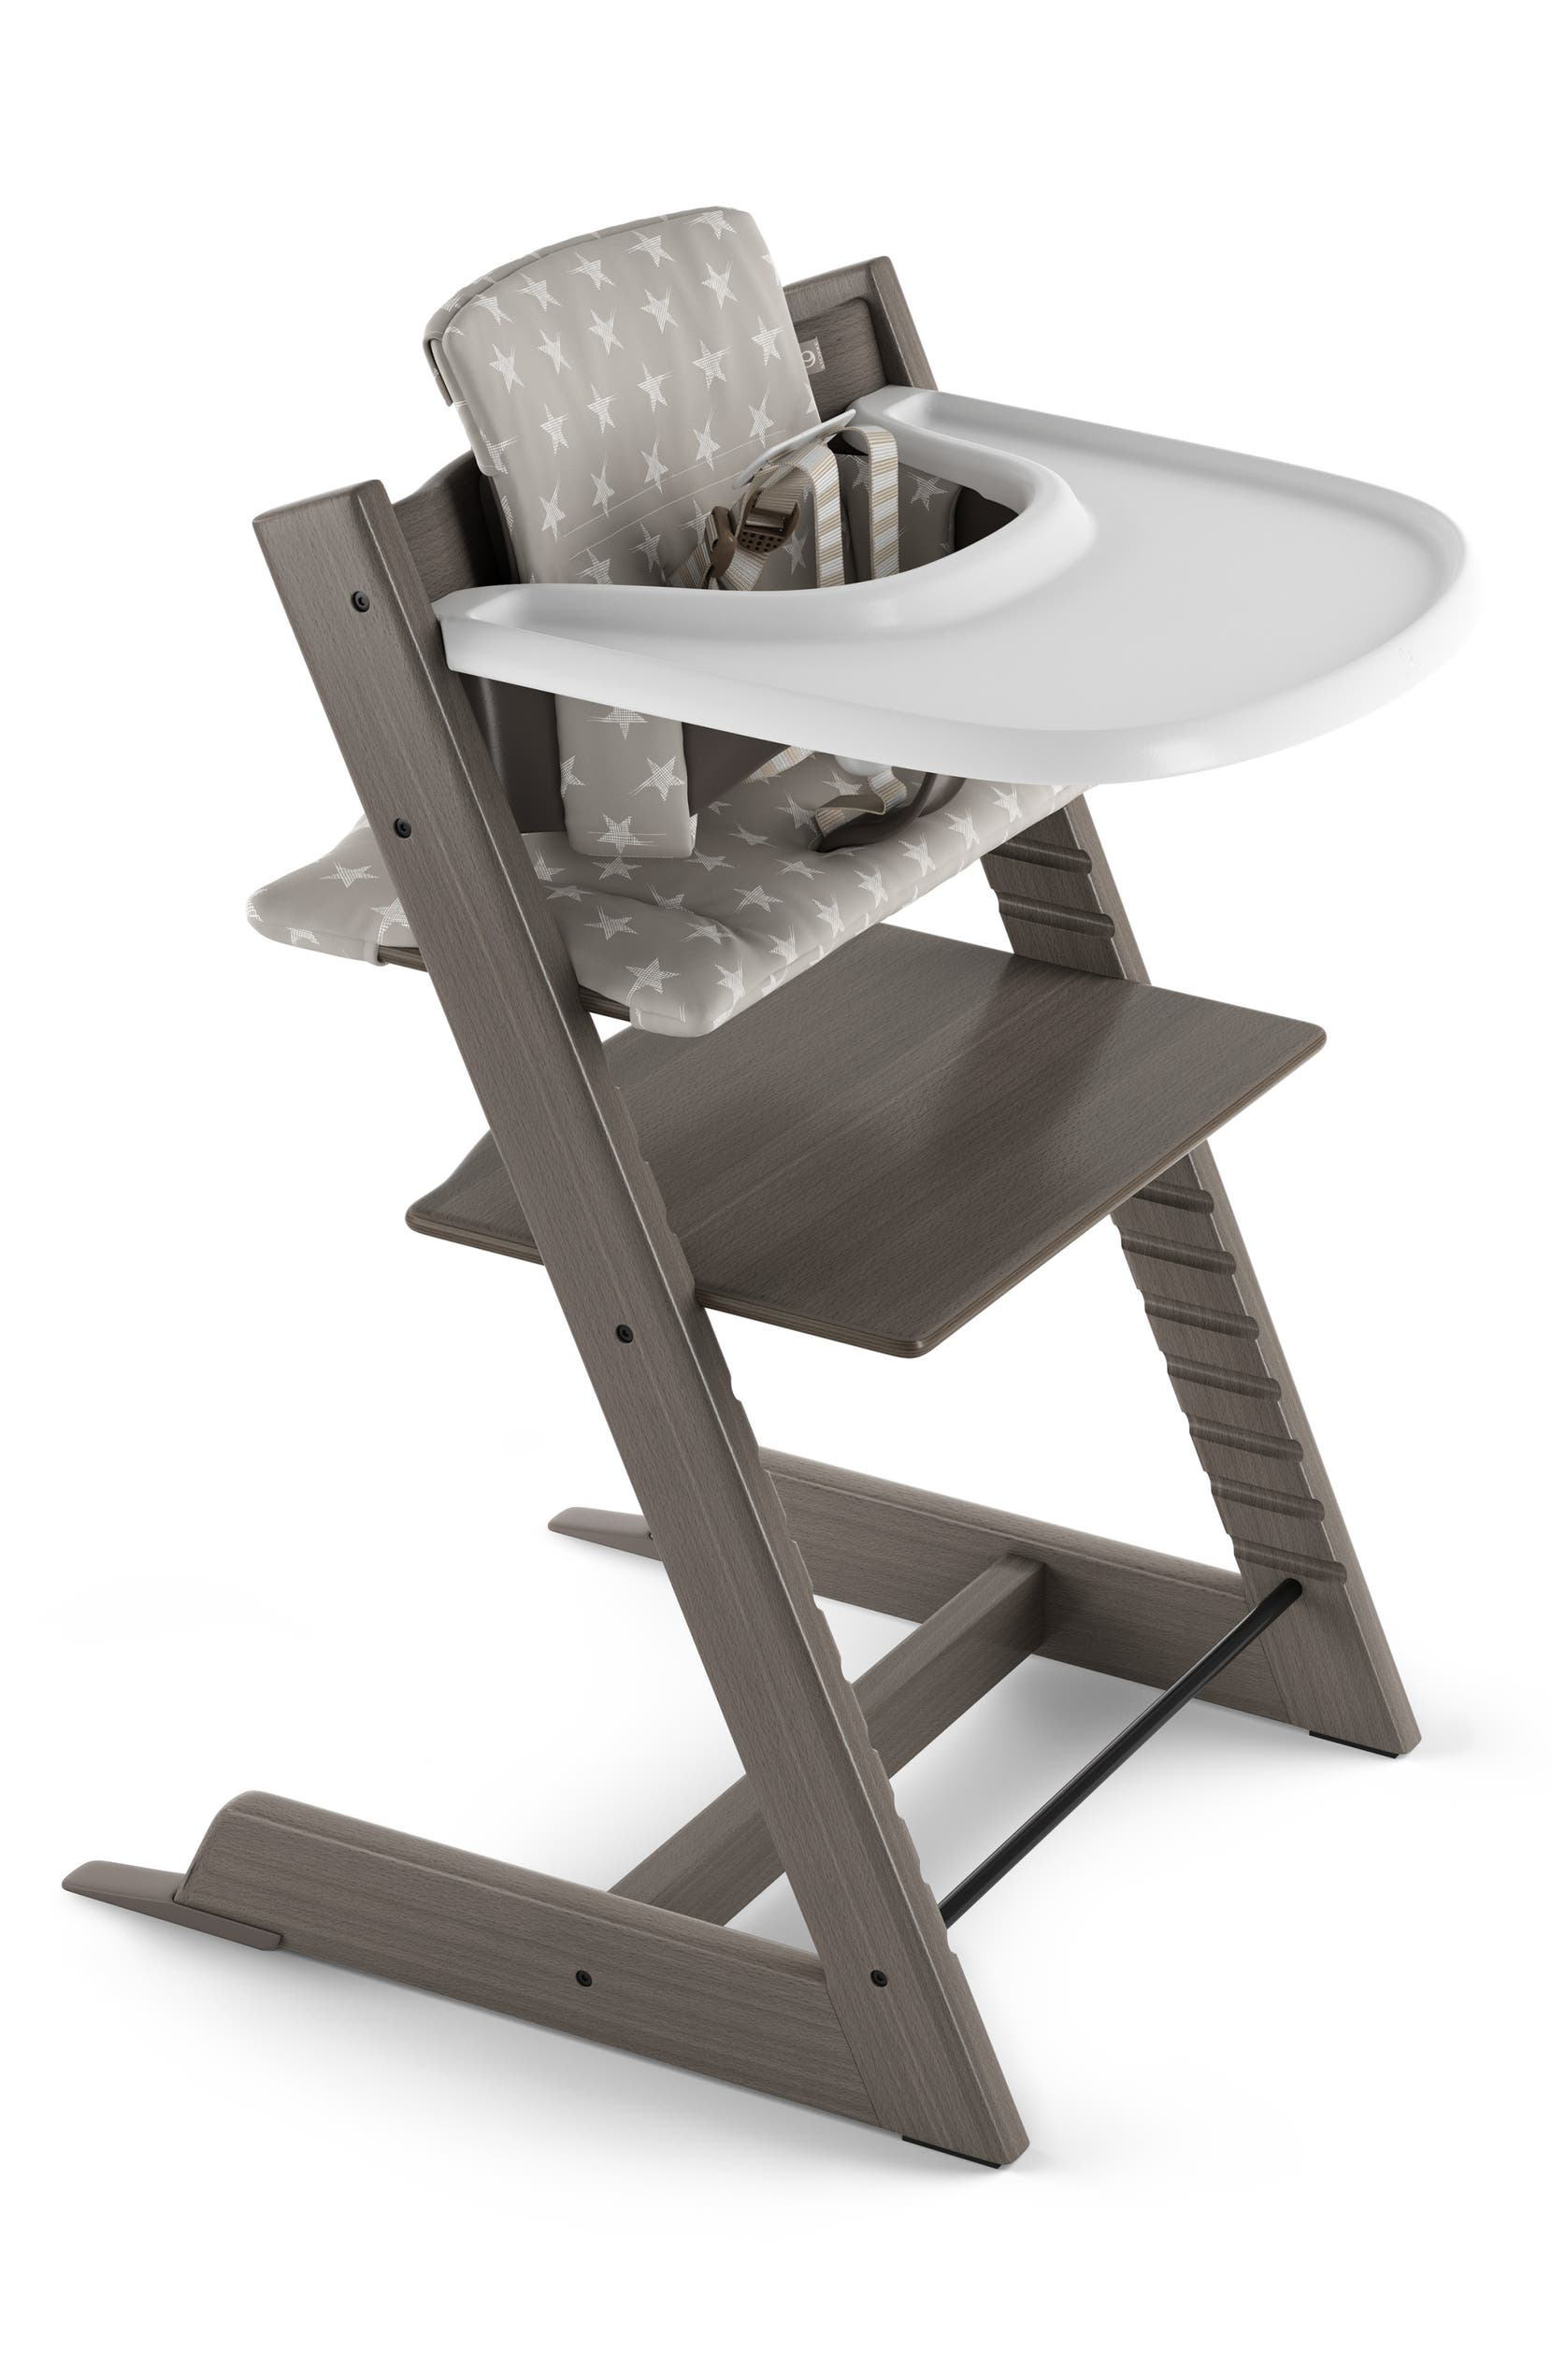 Astounding Tripp Trapp Chair Baby Set Cushion Tray Set Gmtry Best Dining Table And Chair Ideas Images Gmtryco